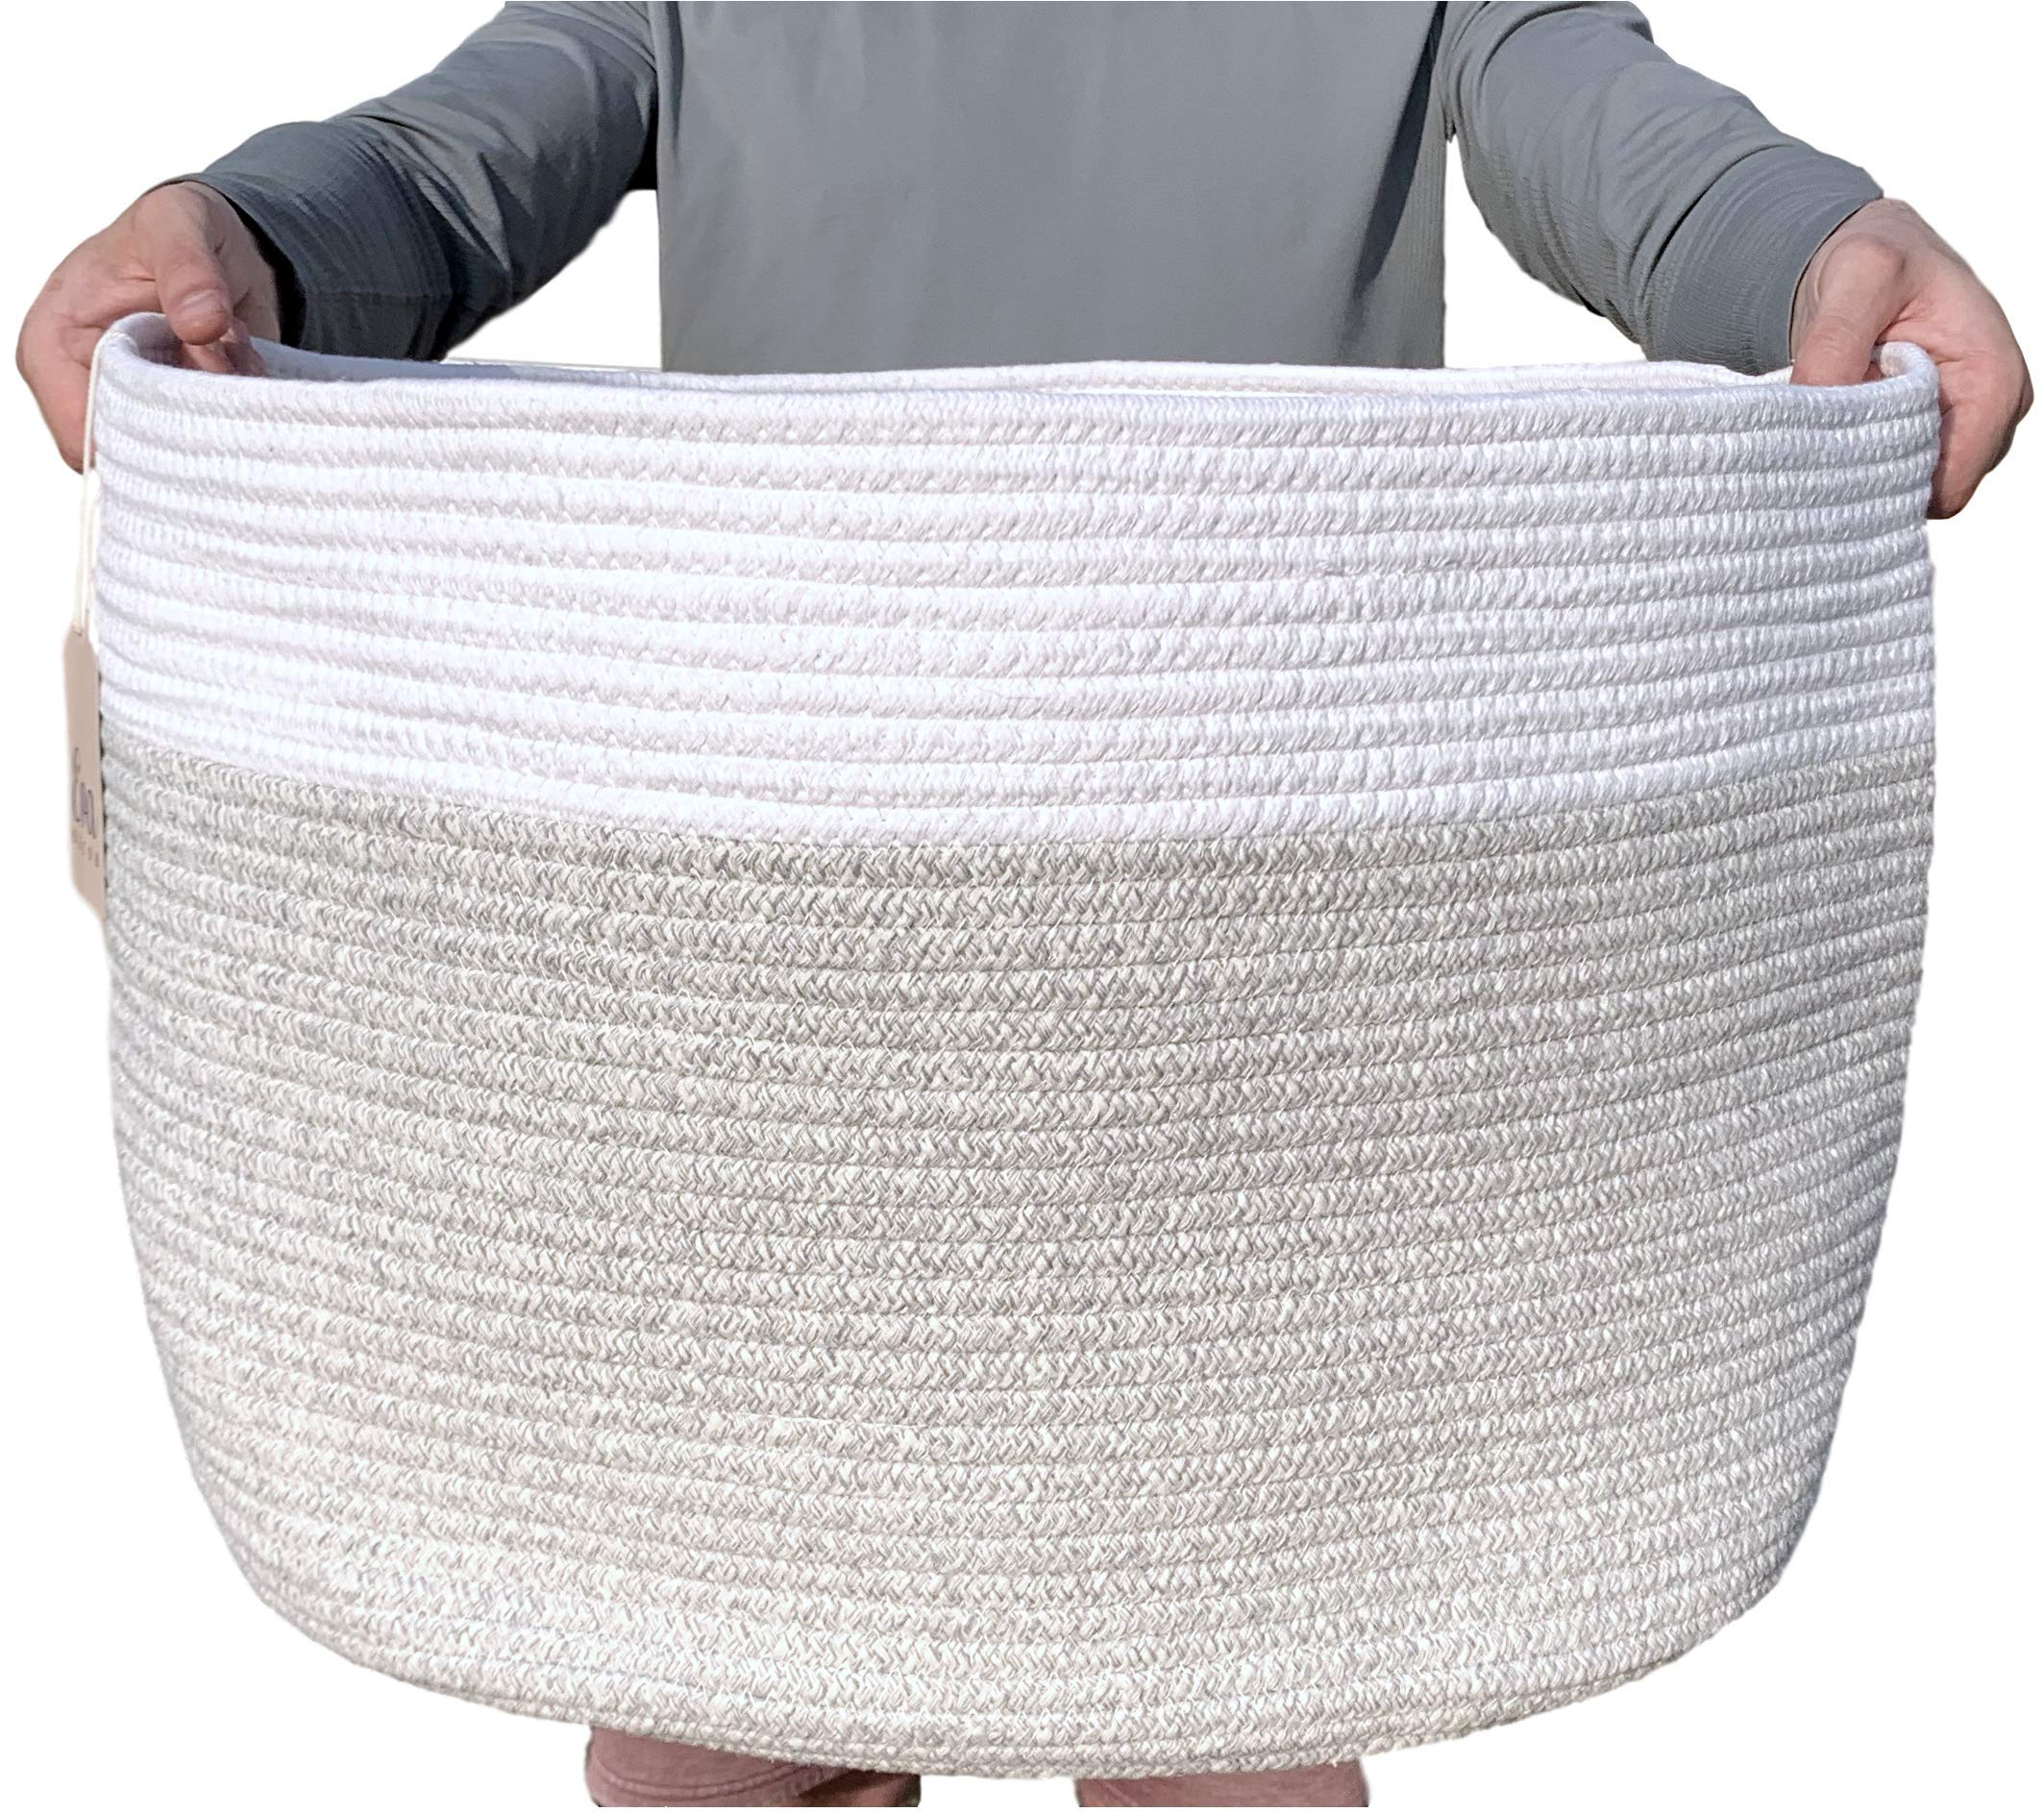 XXXLarge Cotton Rope Basket - 22''x22''x14'' - Woven Hamper Basket with Solid Handles - Use for Towels or Sofa Throws in The Living Room - Ideal for Baby Laundry, Toy Storage & Decorative Blankets